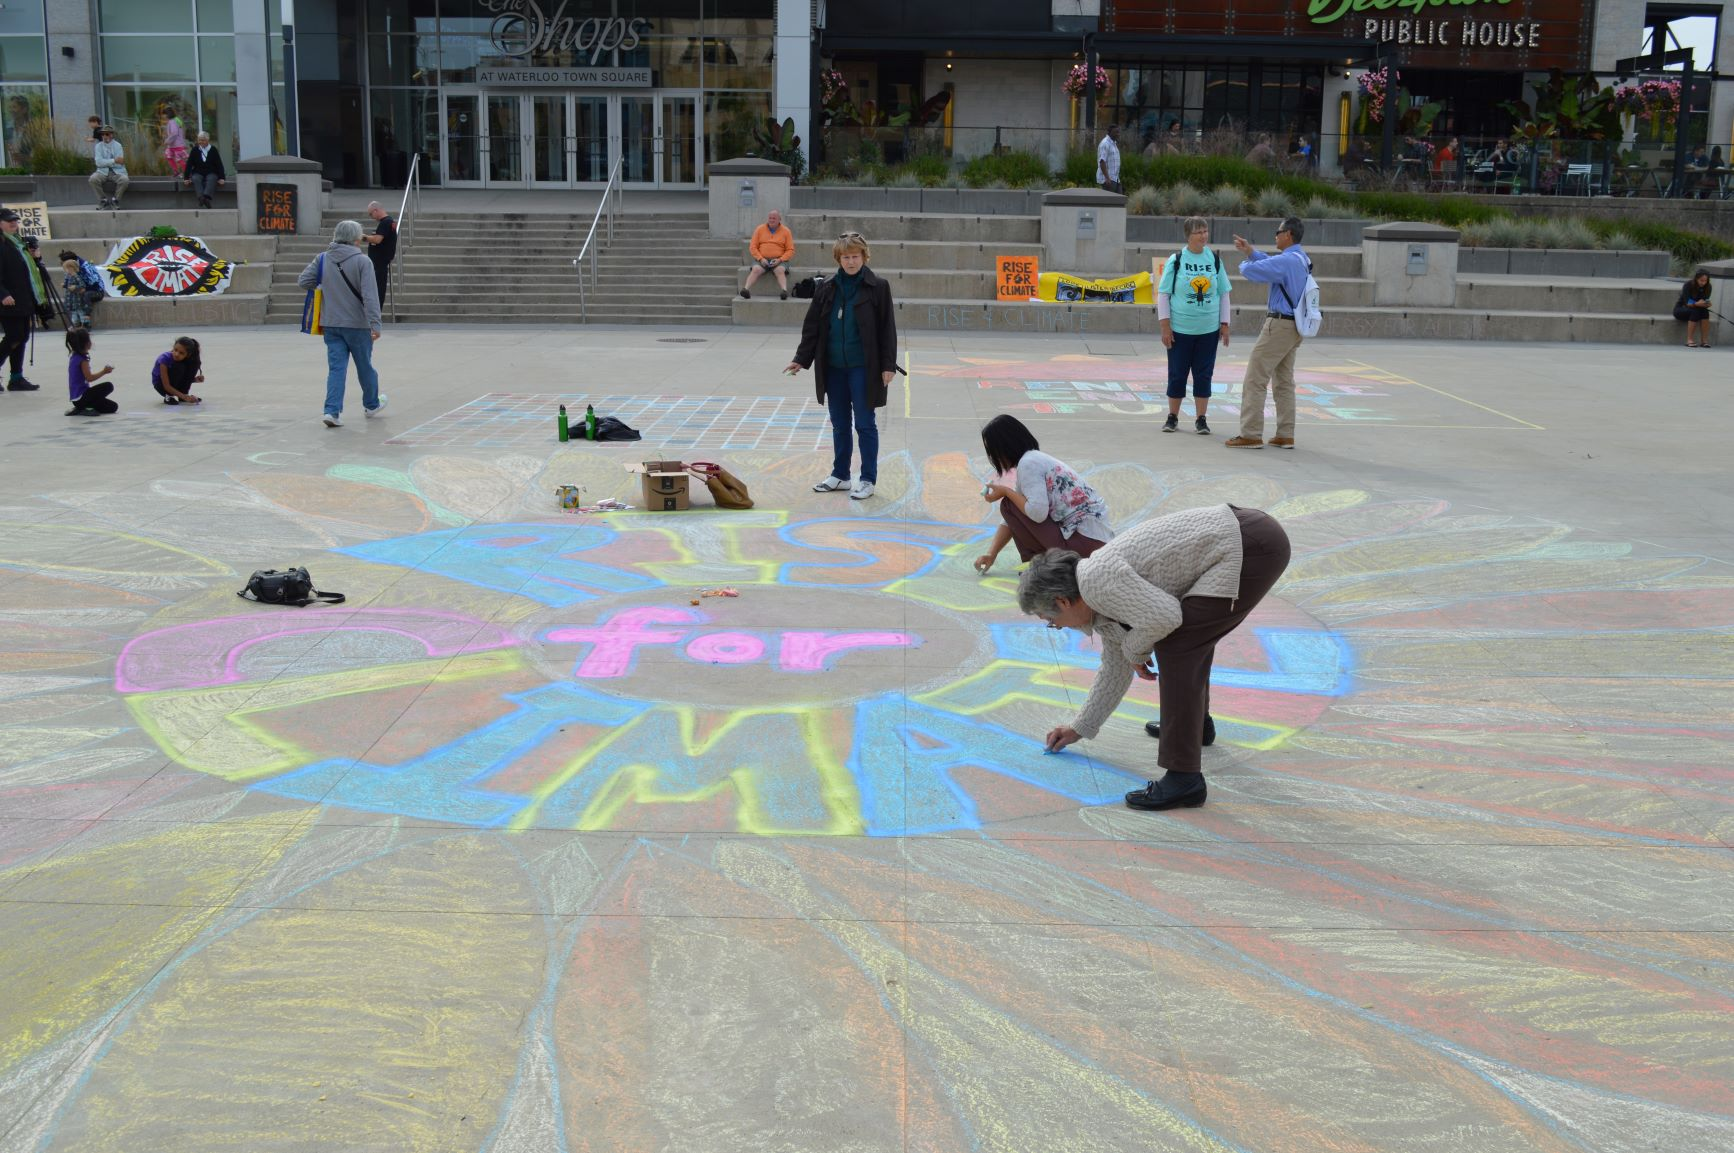 By Darick Charbonneau, Spoke News Hundreds of people turned out on Sept. 8 for Rise for Climate, an international display of protest and calls for change that saw over 900 different actions in 91 countries across all seven continents. The Waterloo Region Citizens' Climate Lobby and the Waterloo Region Labour Council, among others, in conjunction with 350.org, partnered to bring local activists and speakers together to demand change and accountability from our elected representatives to...